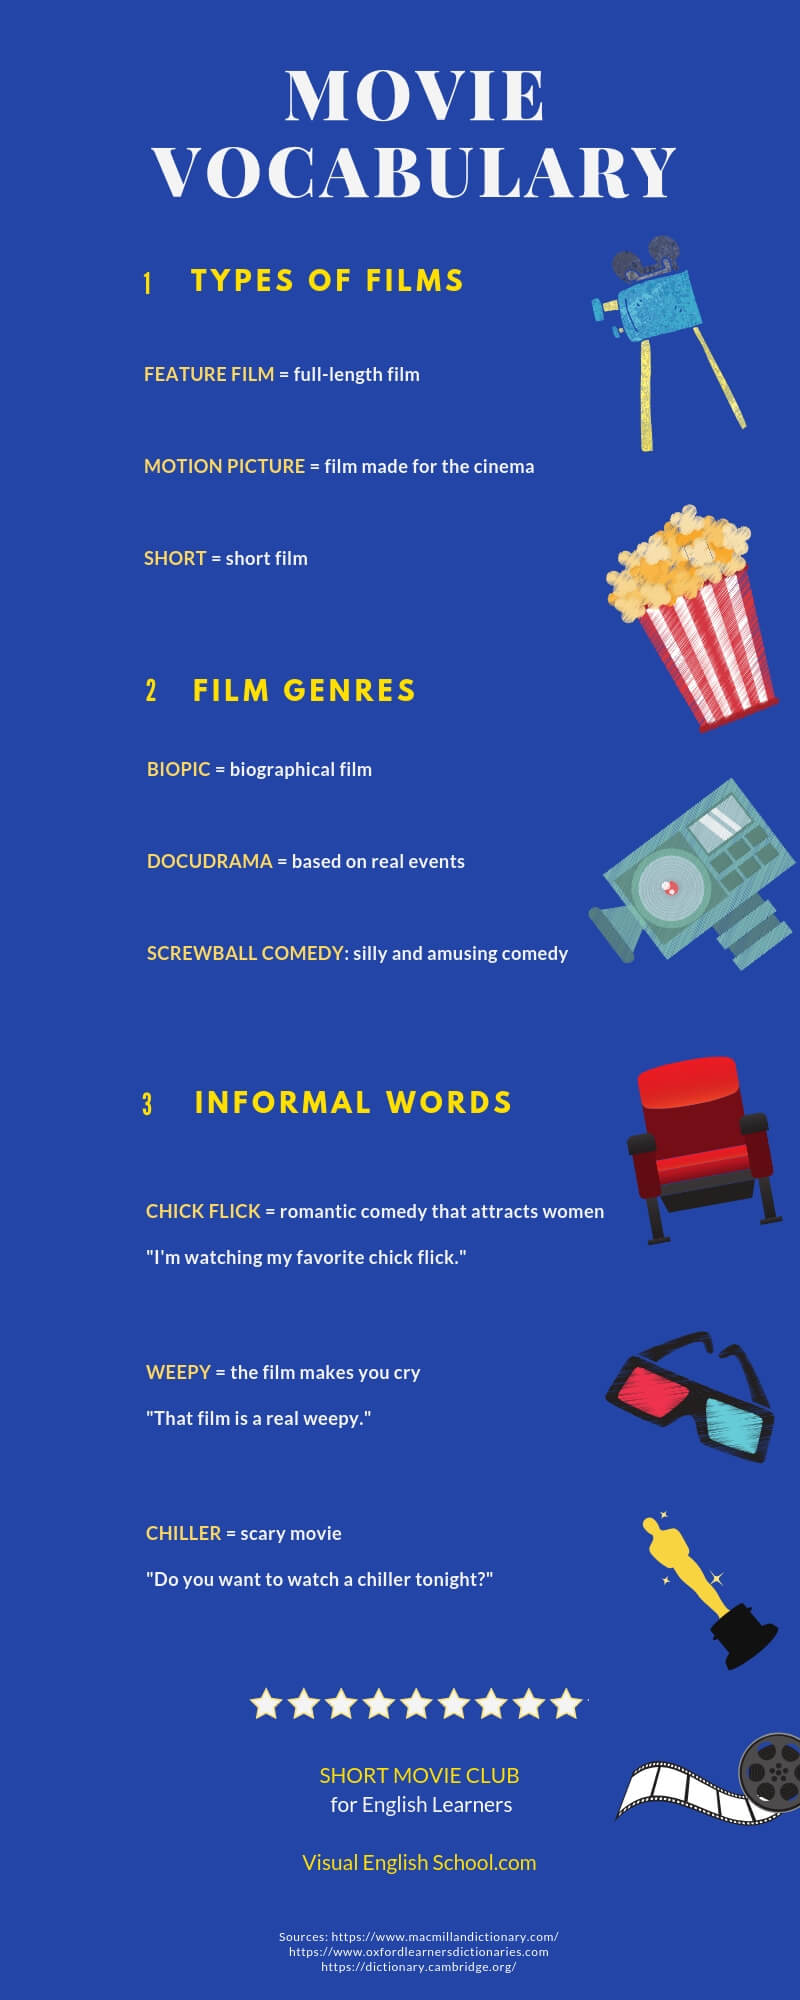 Learn movie vocabulary with the infographic